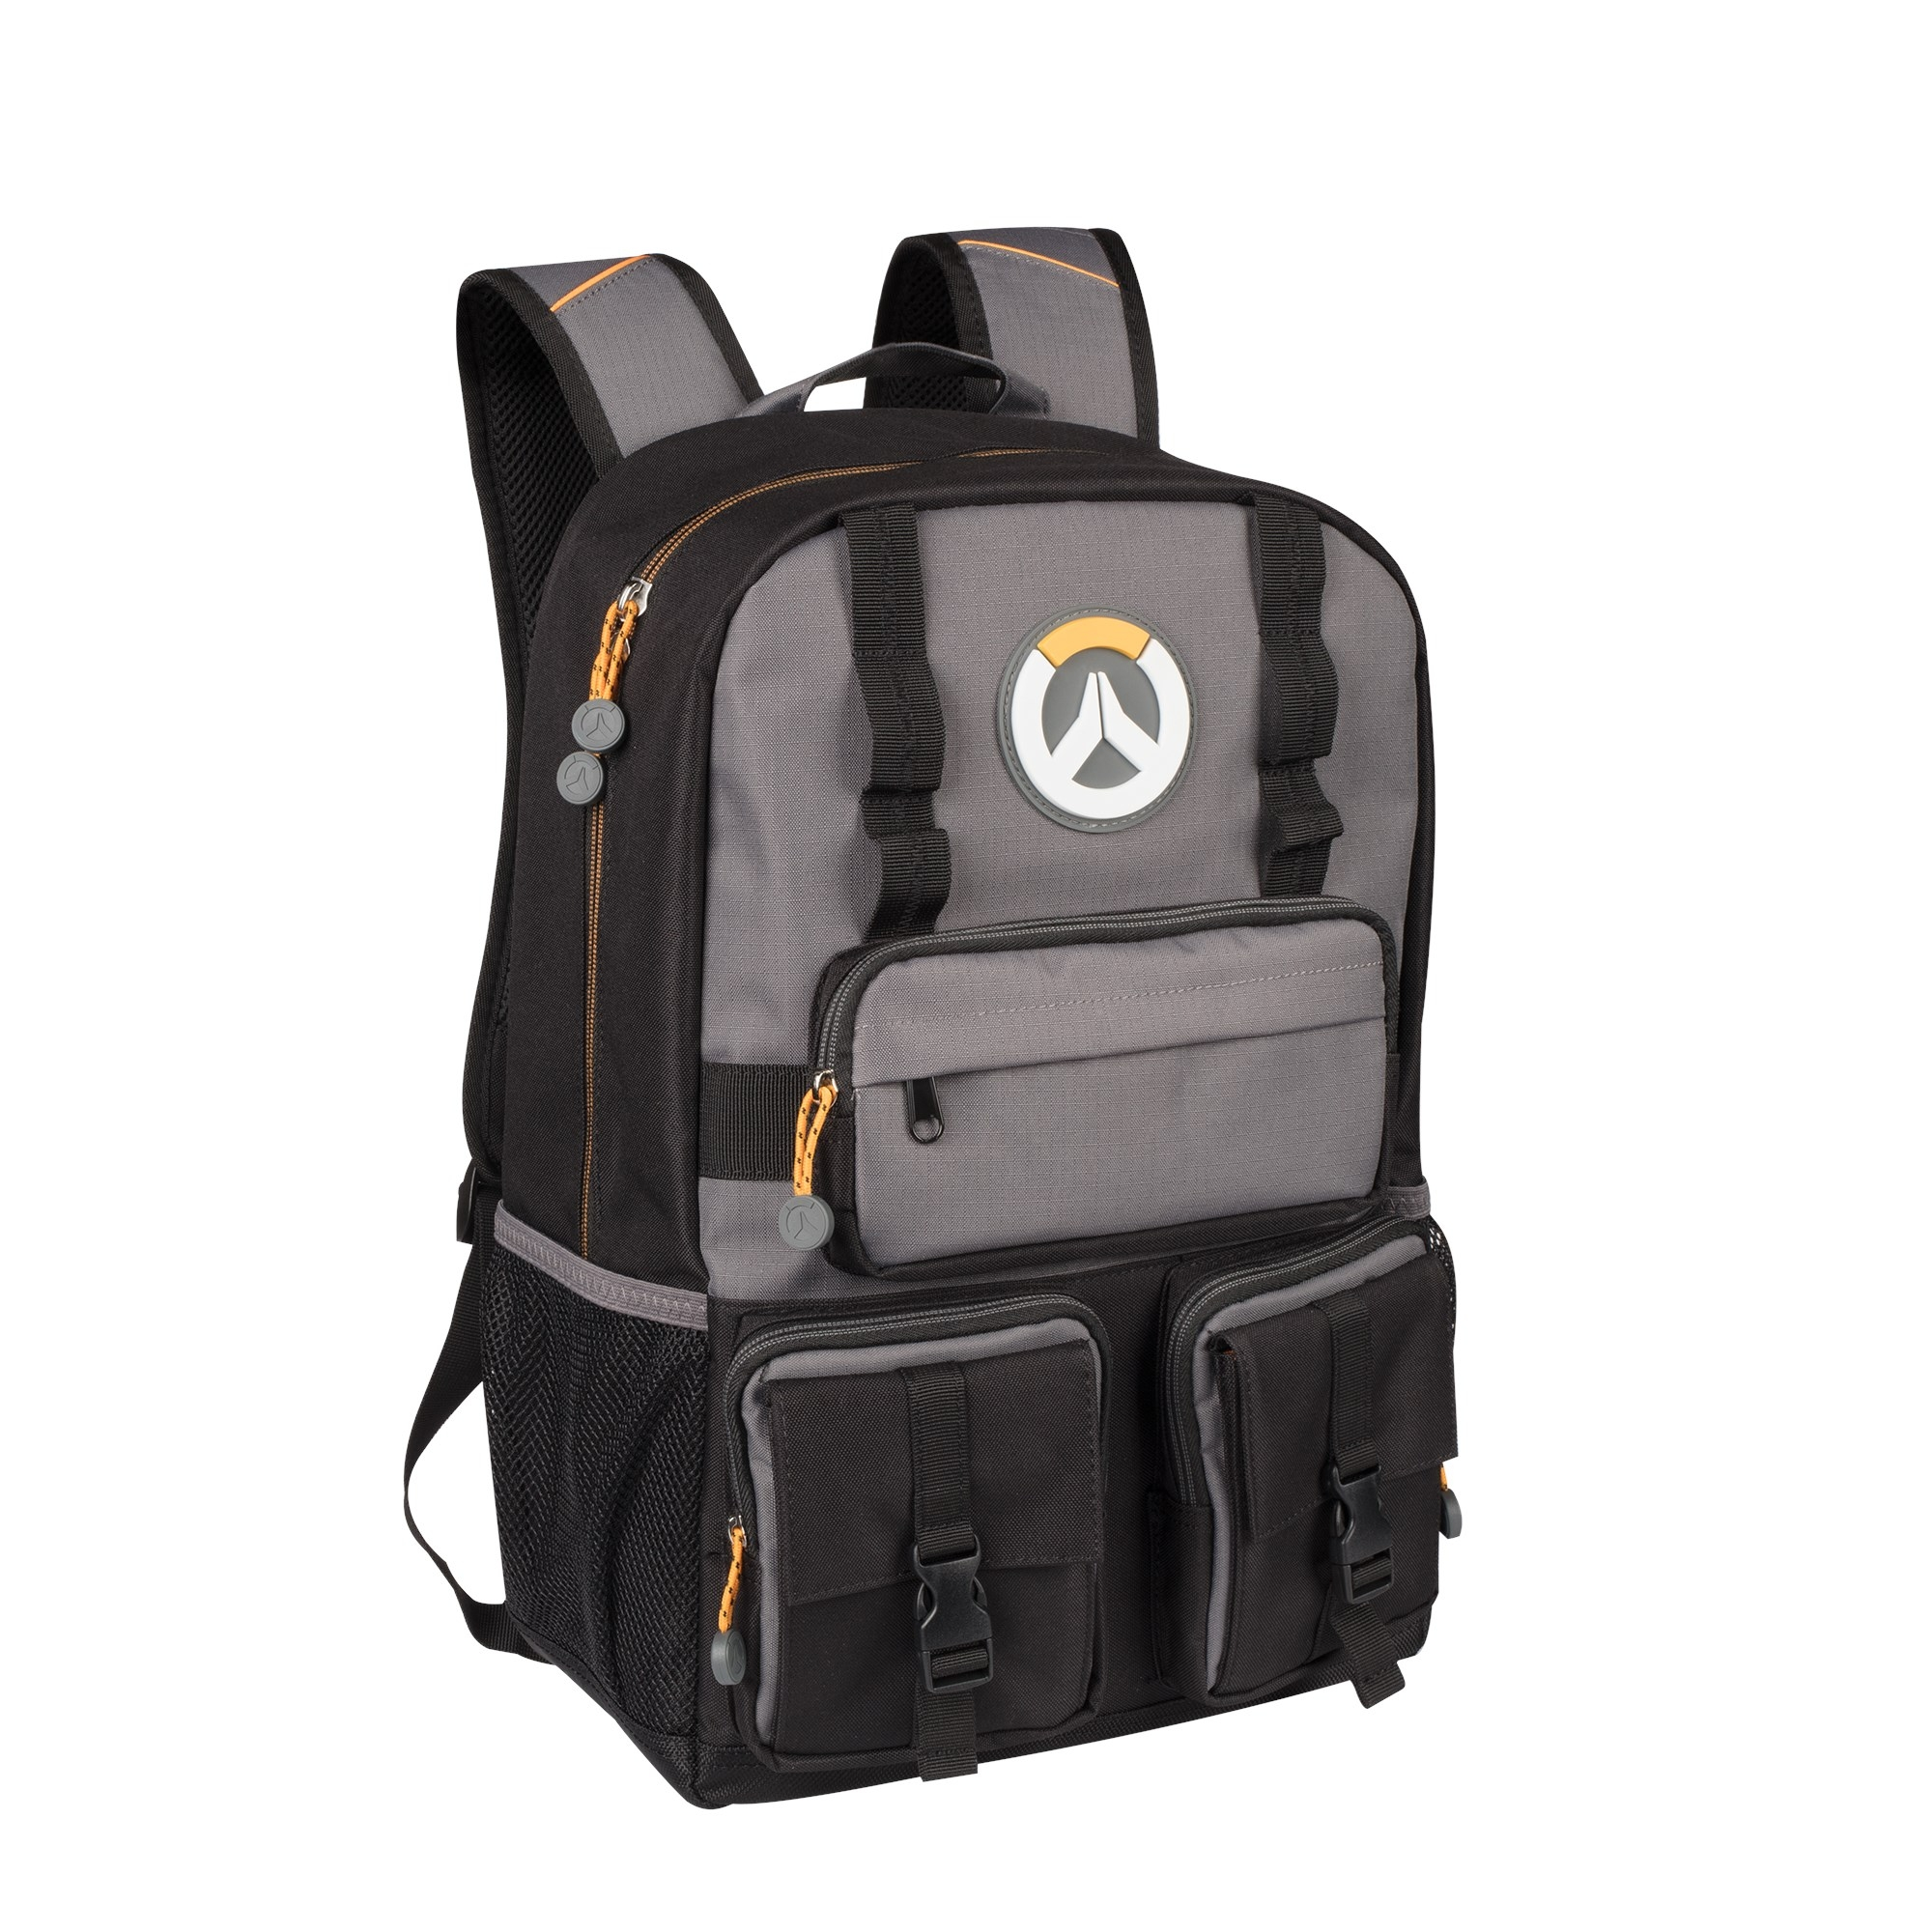 Alternative photo: Overwatch MVP Laptop Backpack